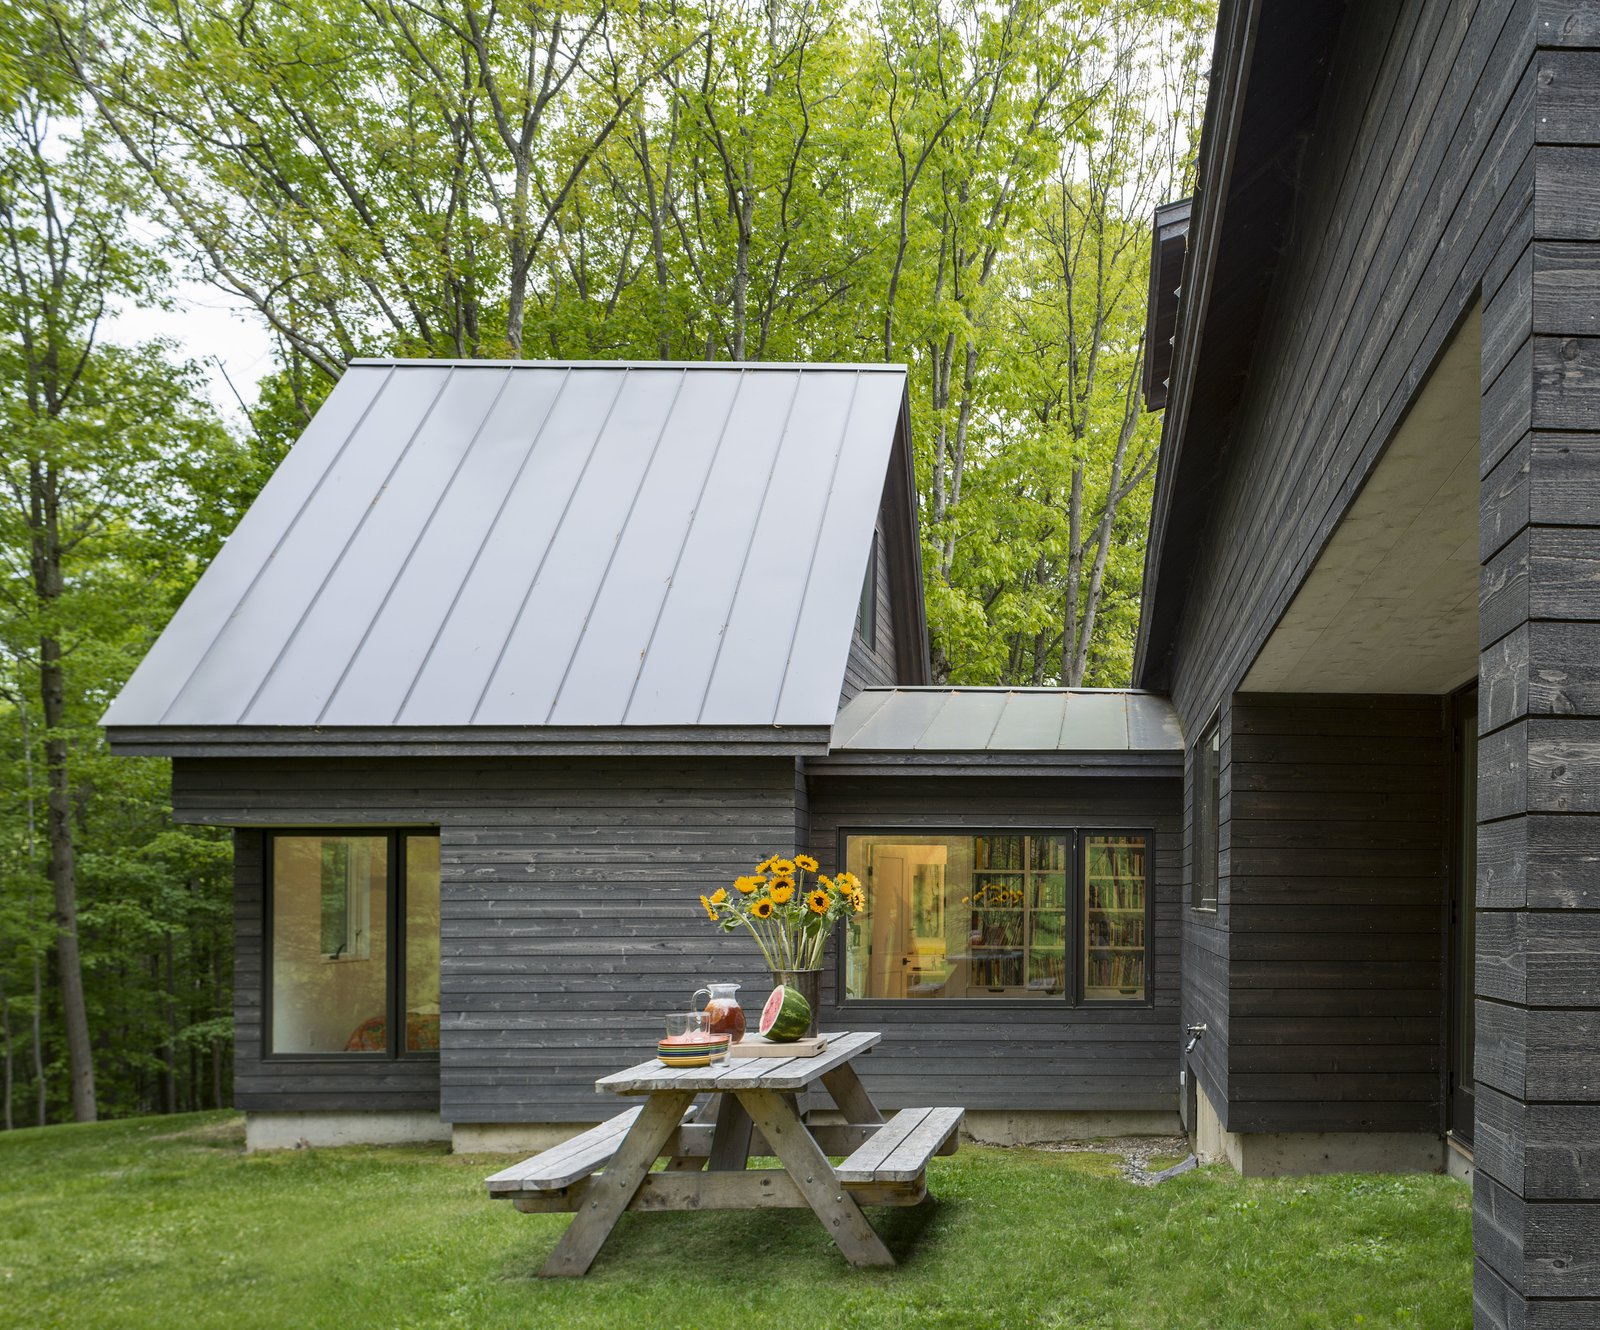 Architect Elizabeth Herrmann's Knoll House project, Best Transitional category winner of 2017 Marvin Architects Challenge.   Tagged: Outdoor, Trees, and Grass.  Knoll House by Marvin Windows and Doors